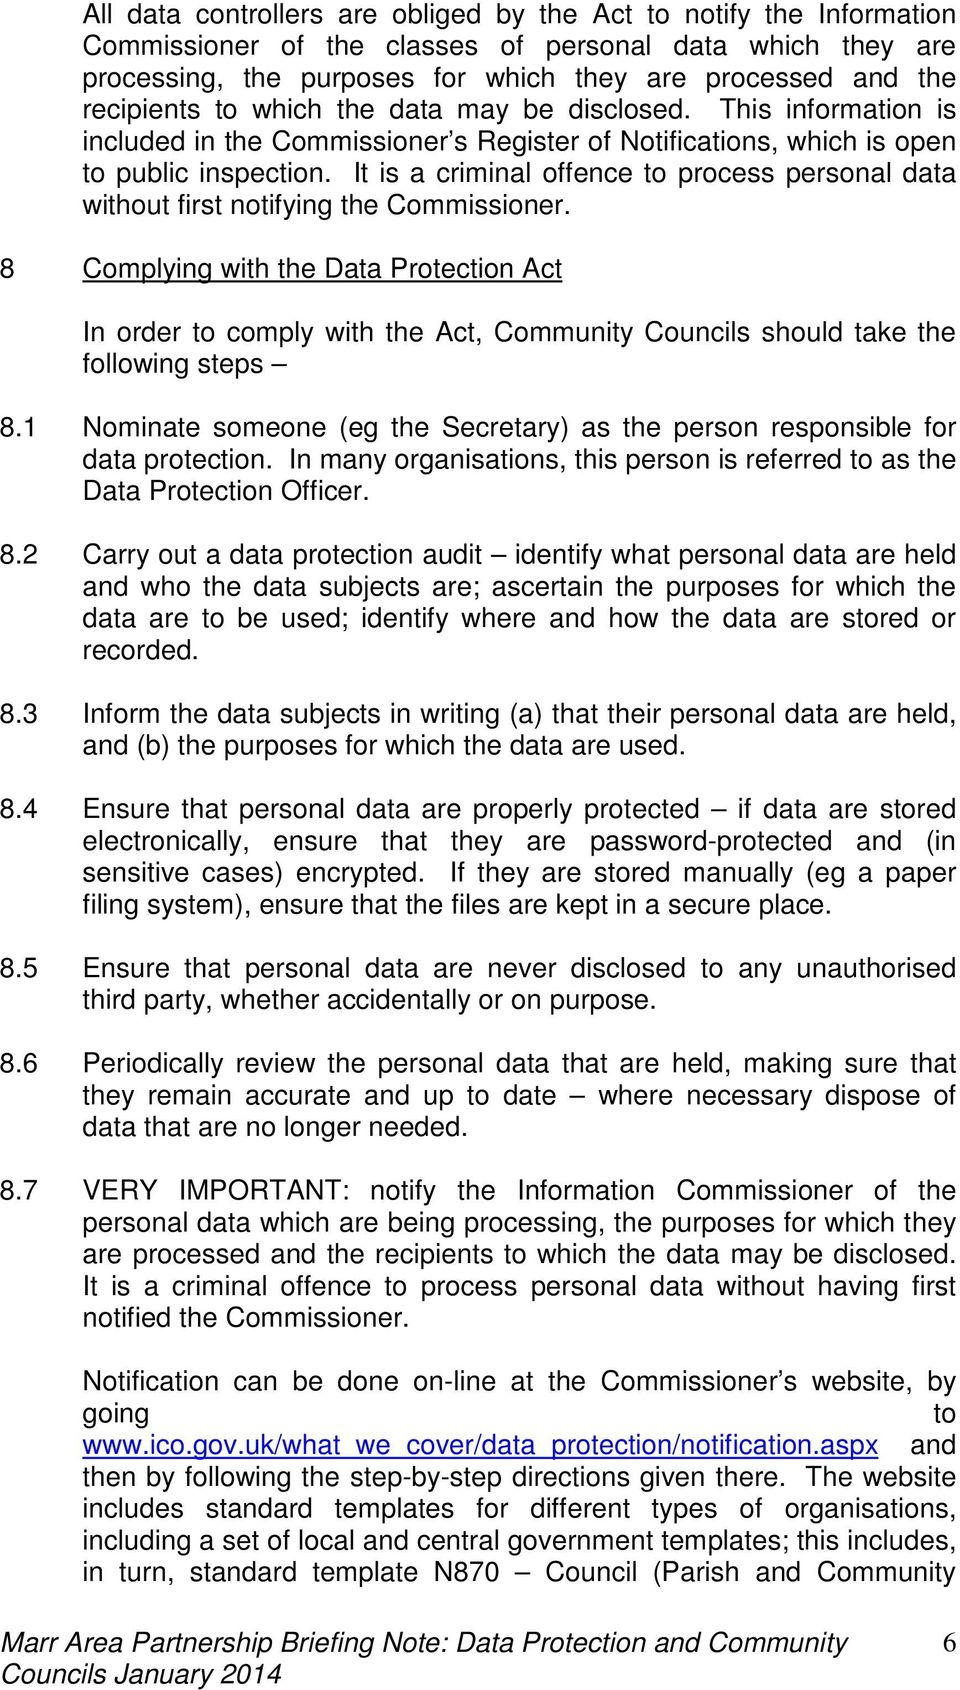 It is a criminal offence to process personal data without first notifying the Commissioner.